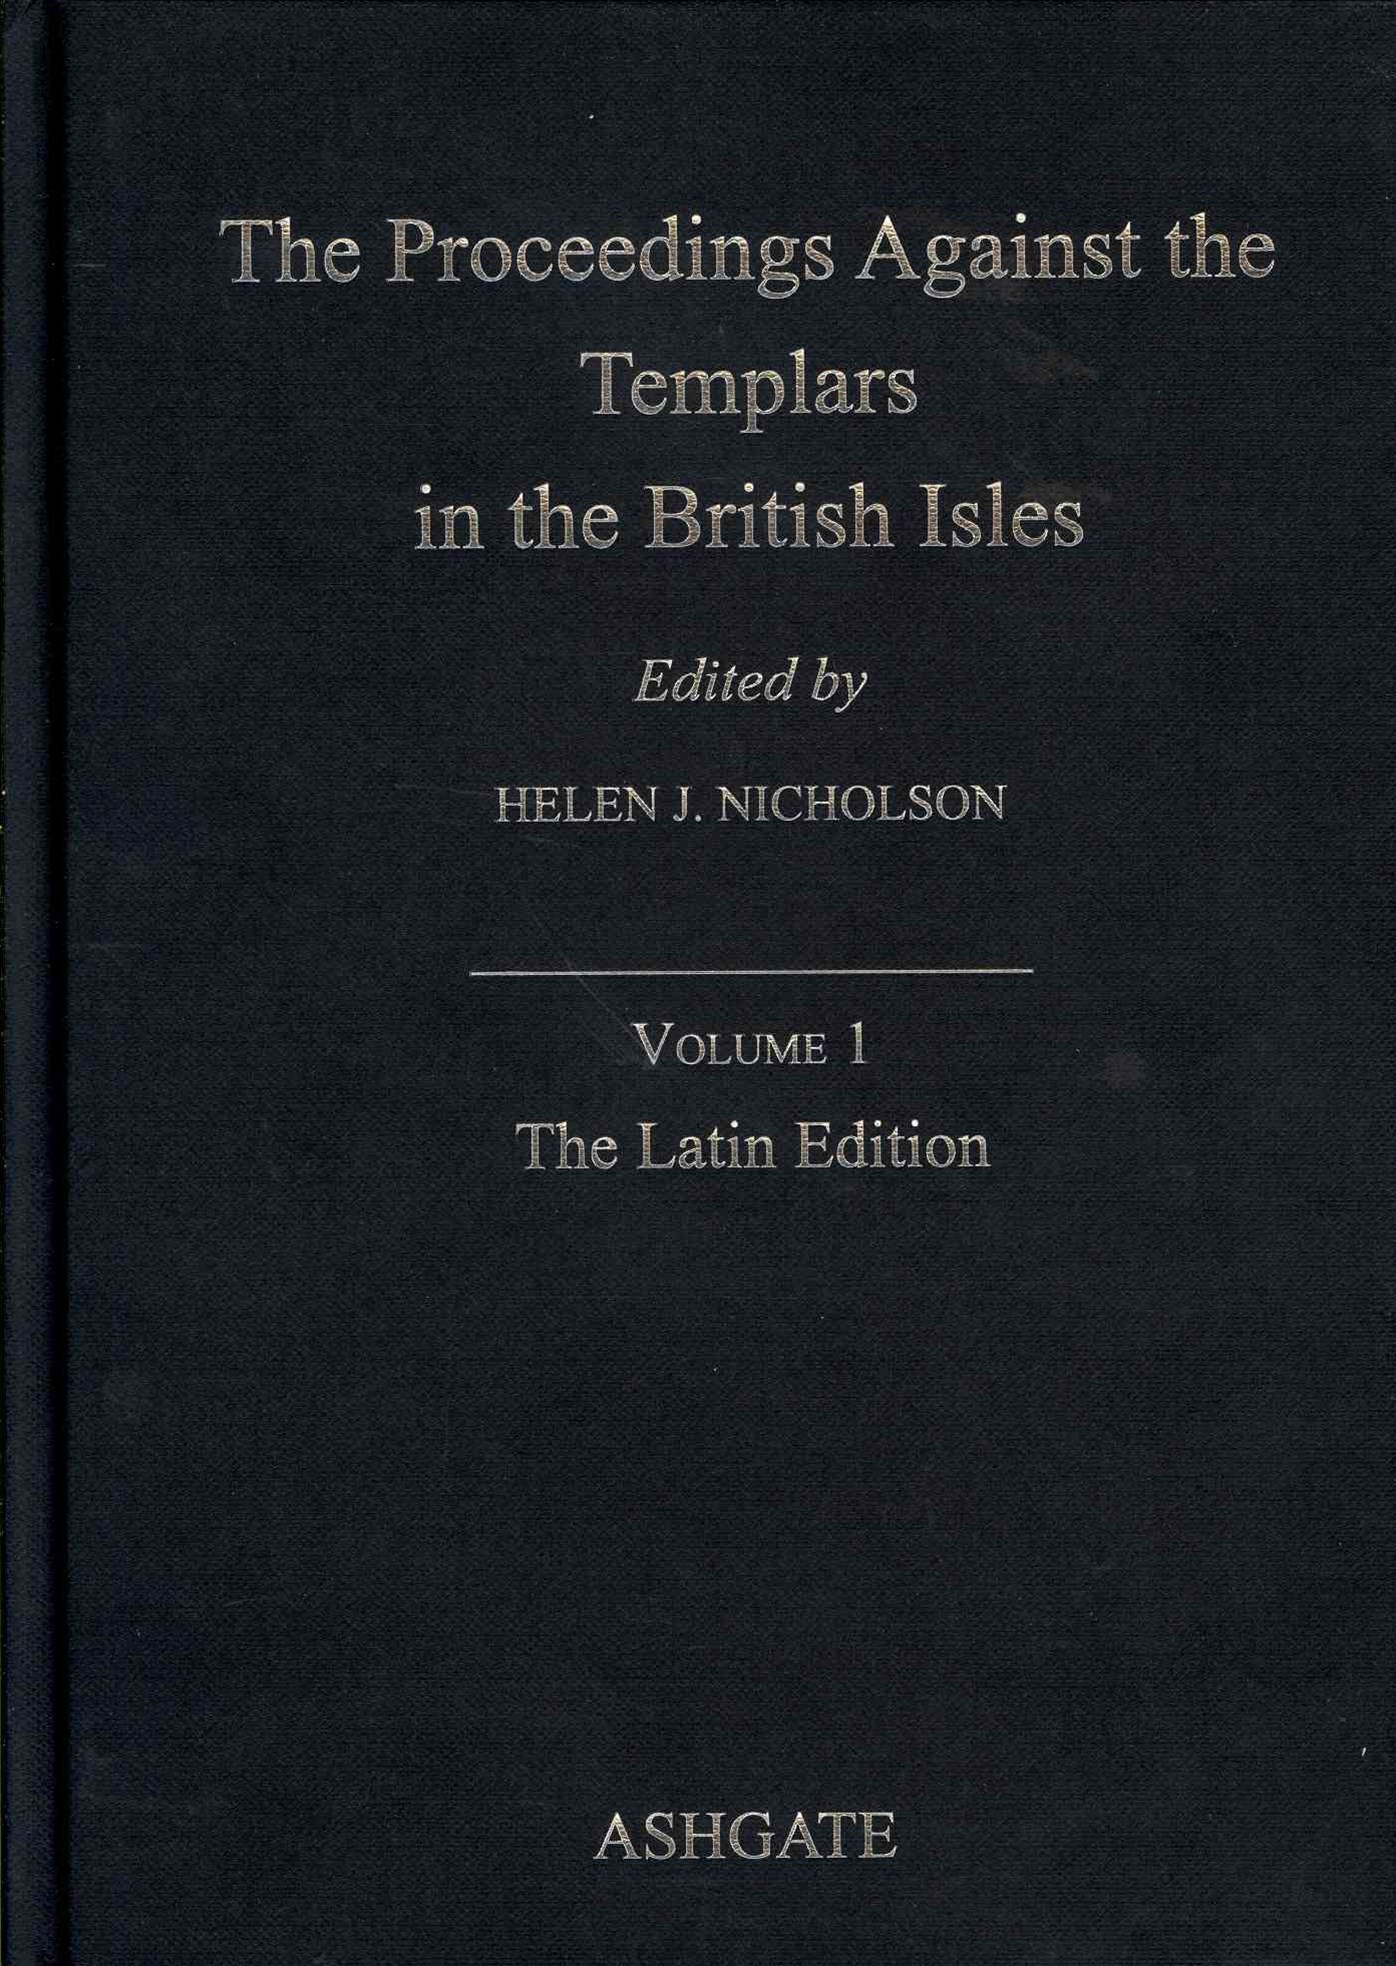 Proceedings Against the Templars in the British Isles